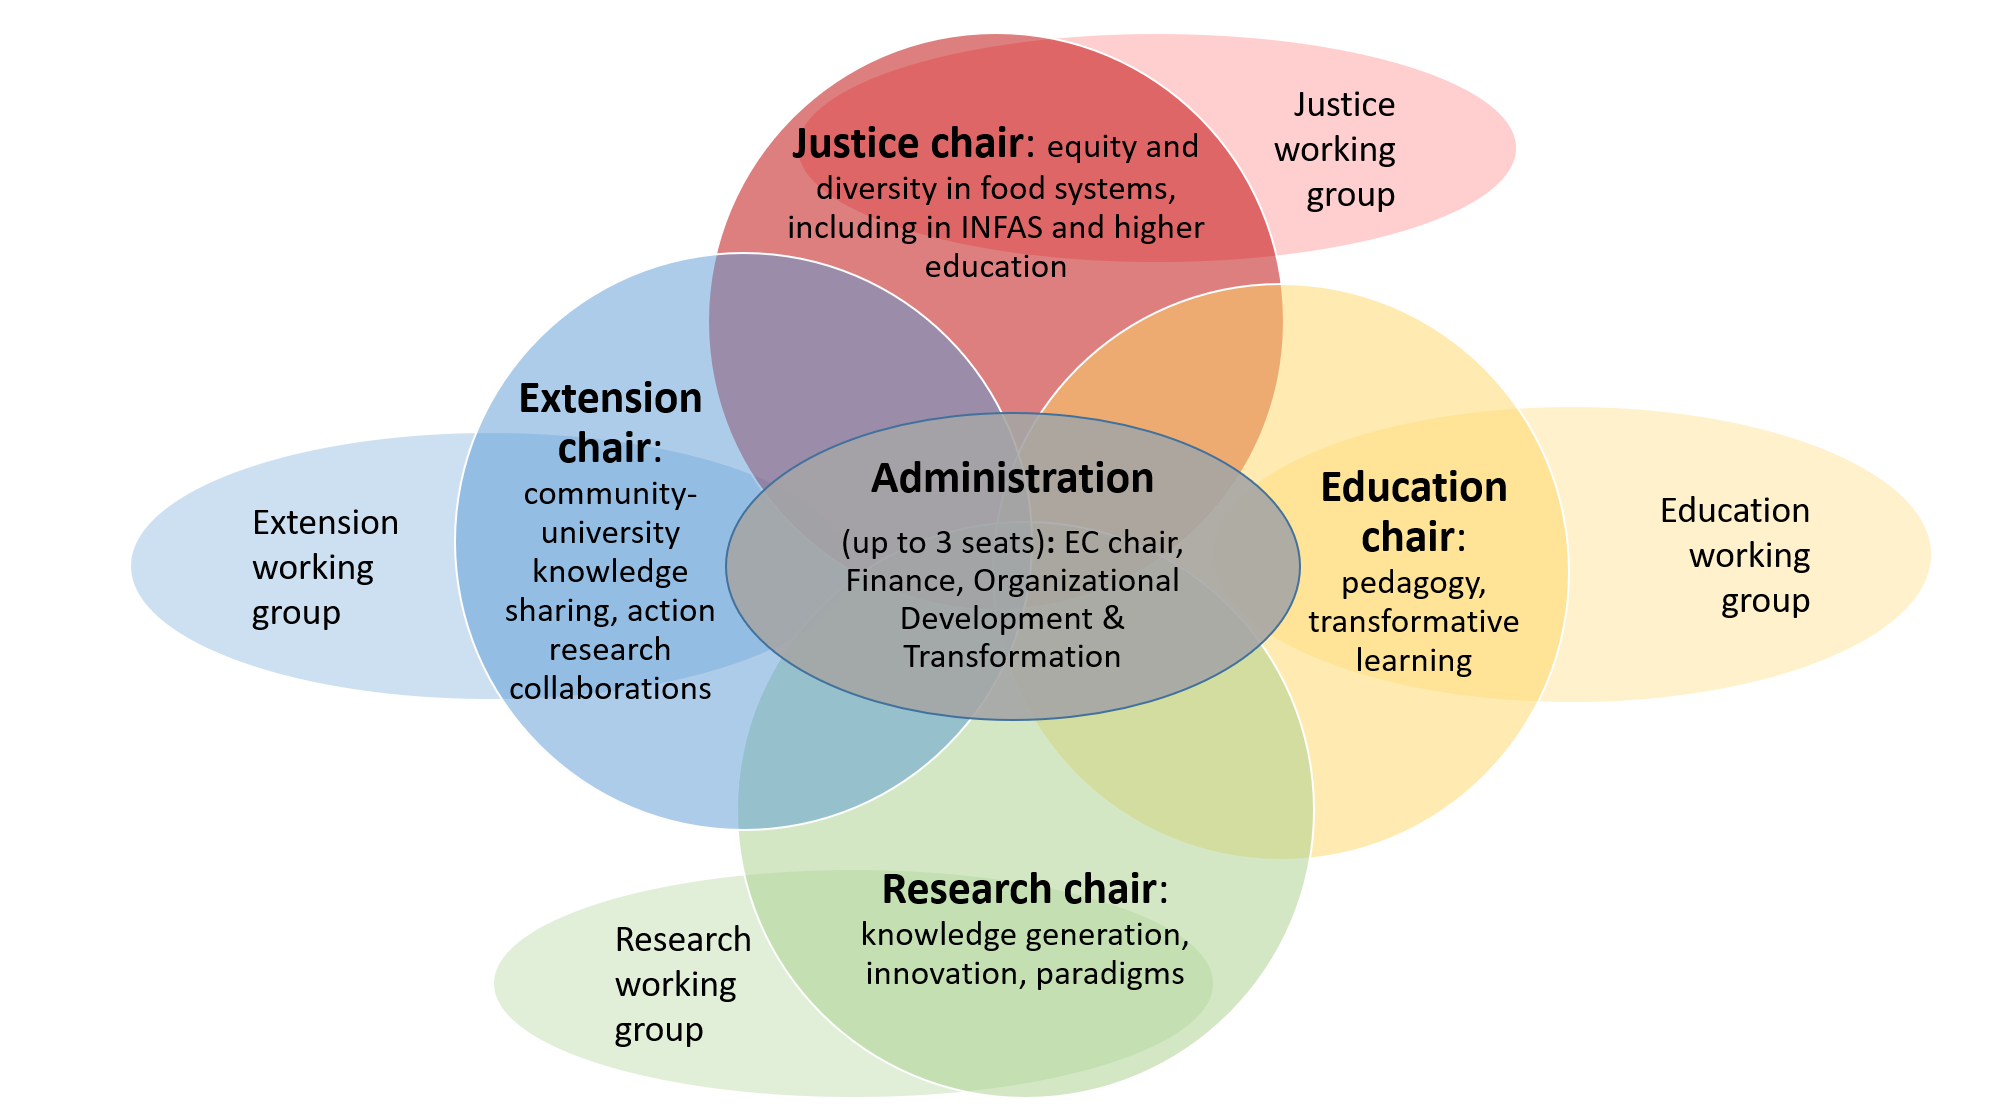 Venn Diagram image of INFAS organization approach.